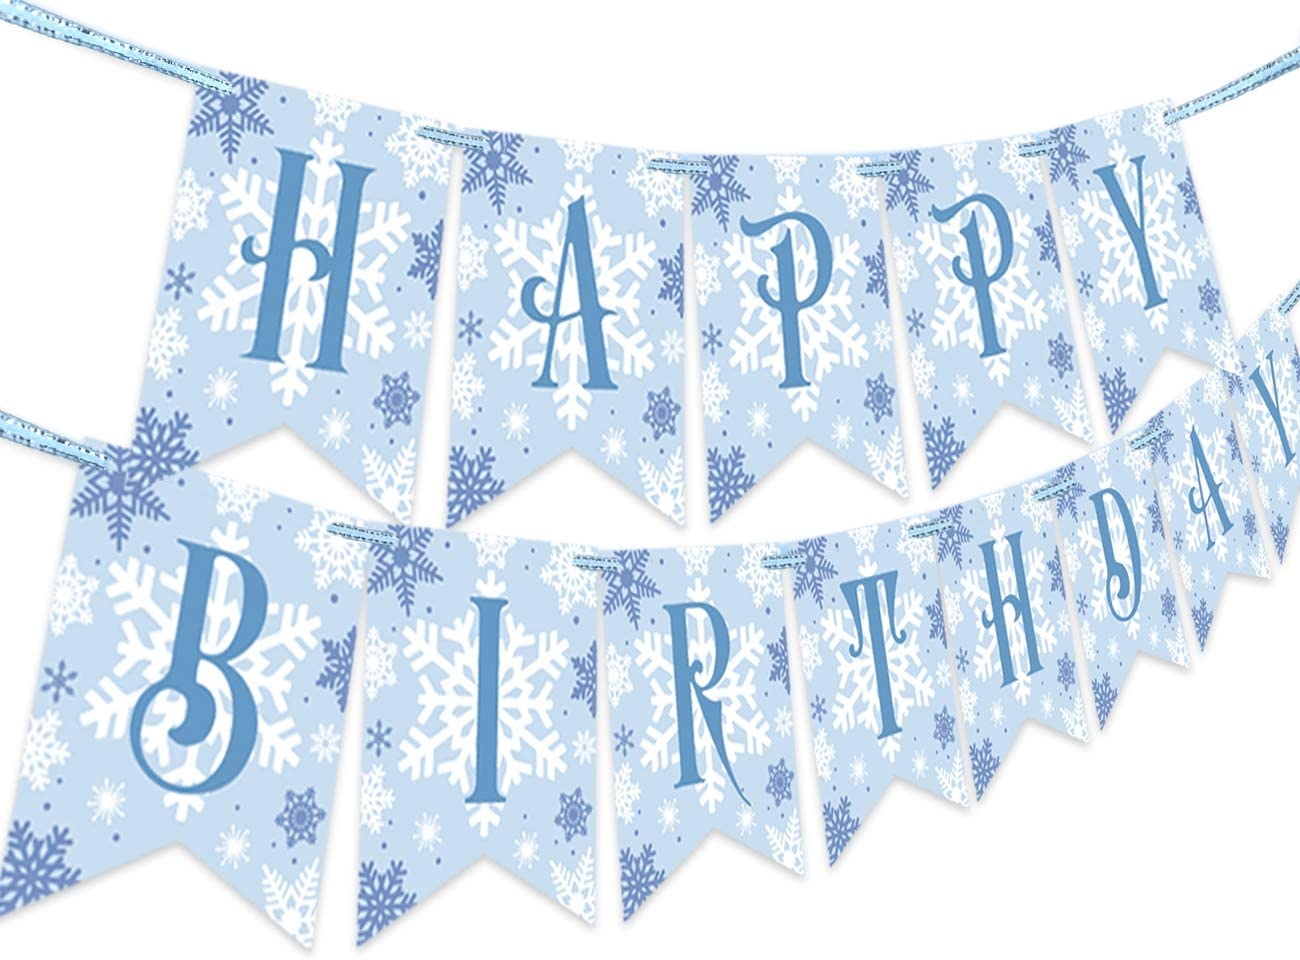 Snowflake Happy Birthday Banner for Frozen Theme, Winter Wonderland 1st 2nd 3rd Birthday Party Decorations and Supplies